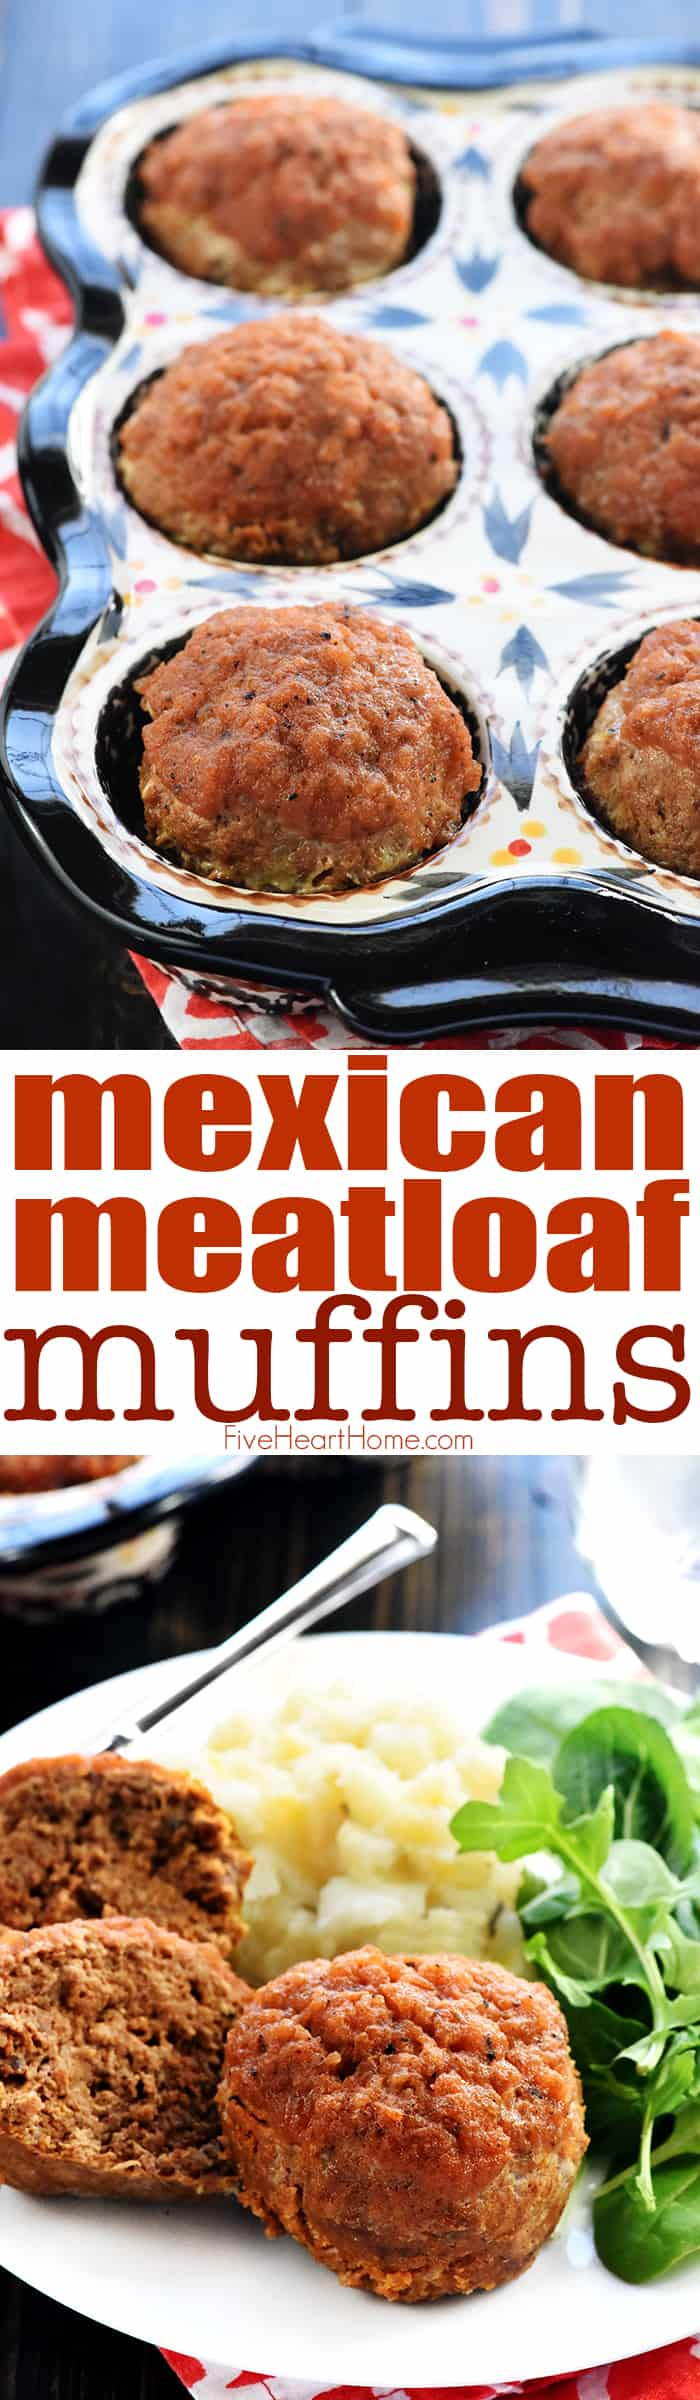 Mexican Meatloaf Muffins ~ simple to make, quick to cook, and full of zesty flavor from homemade taco seasoning and salsa! | FiveHeartHome.com